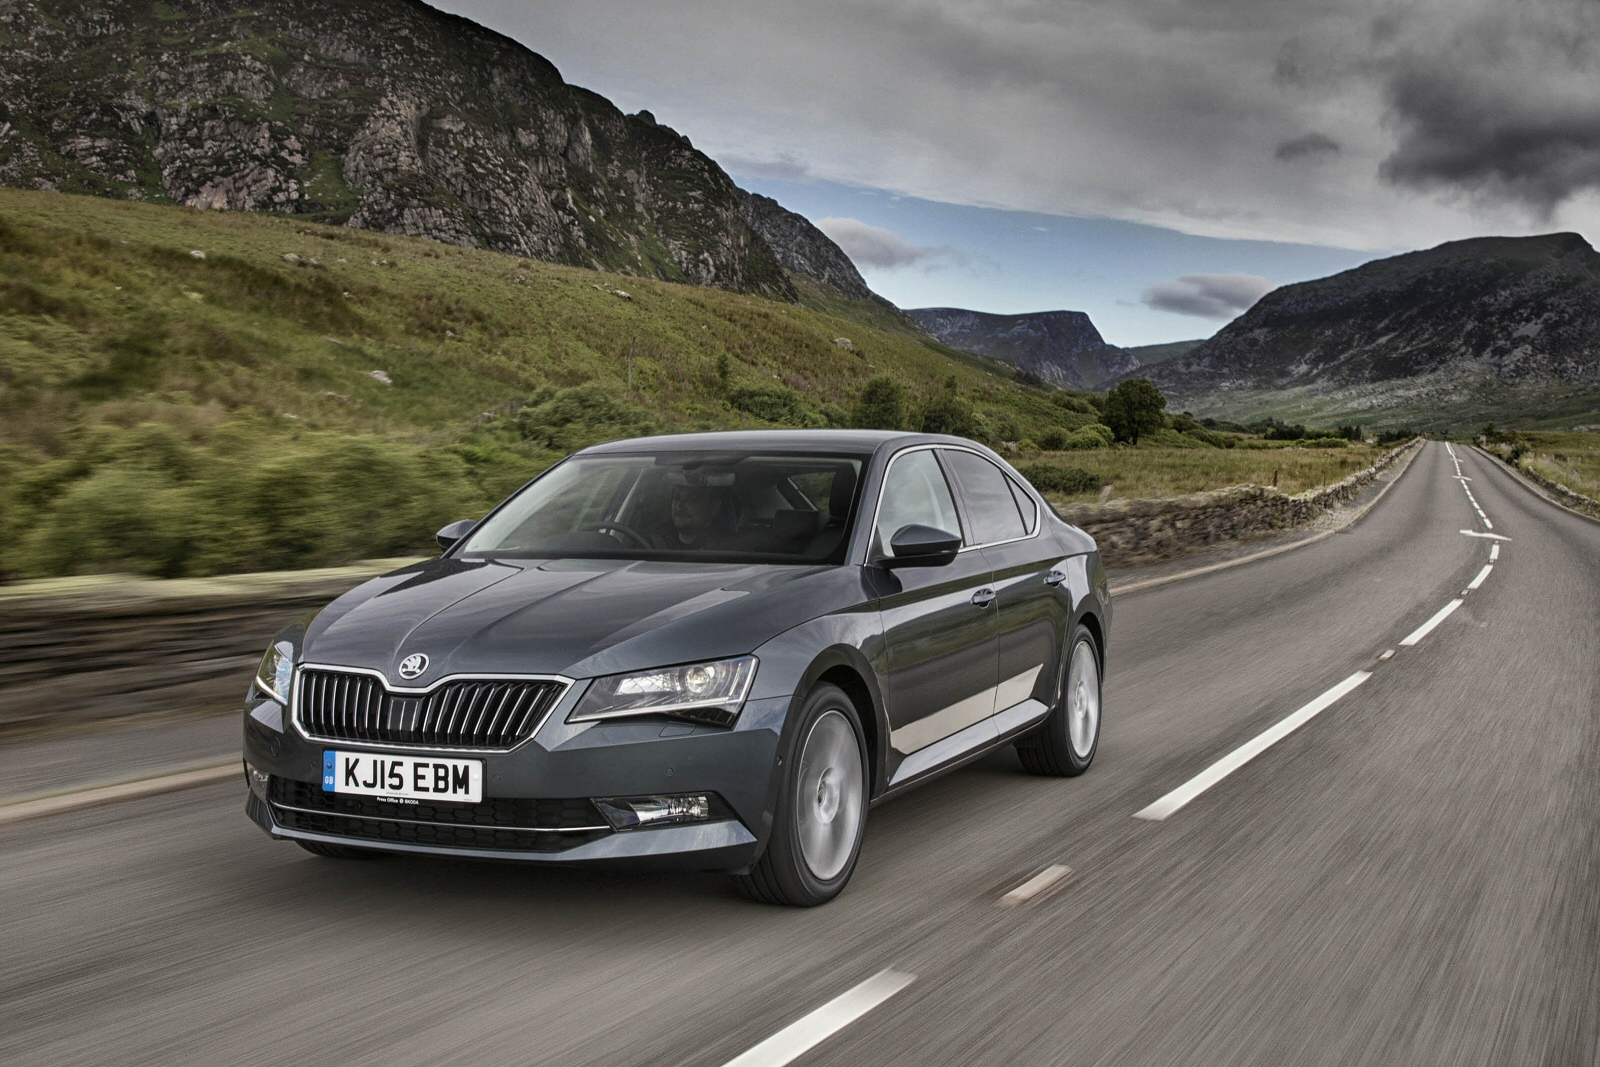 executive summary skoda Car news, reviews, opinion and features from autocar - the world's oldest car publication bringing you everything automotive since 1895.